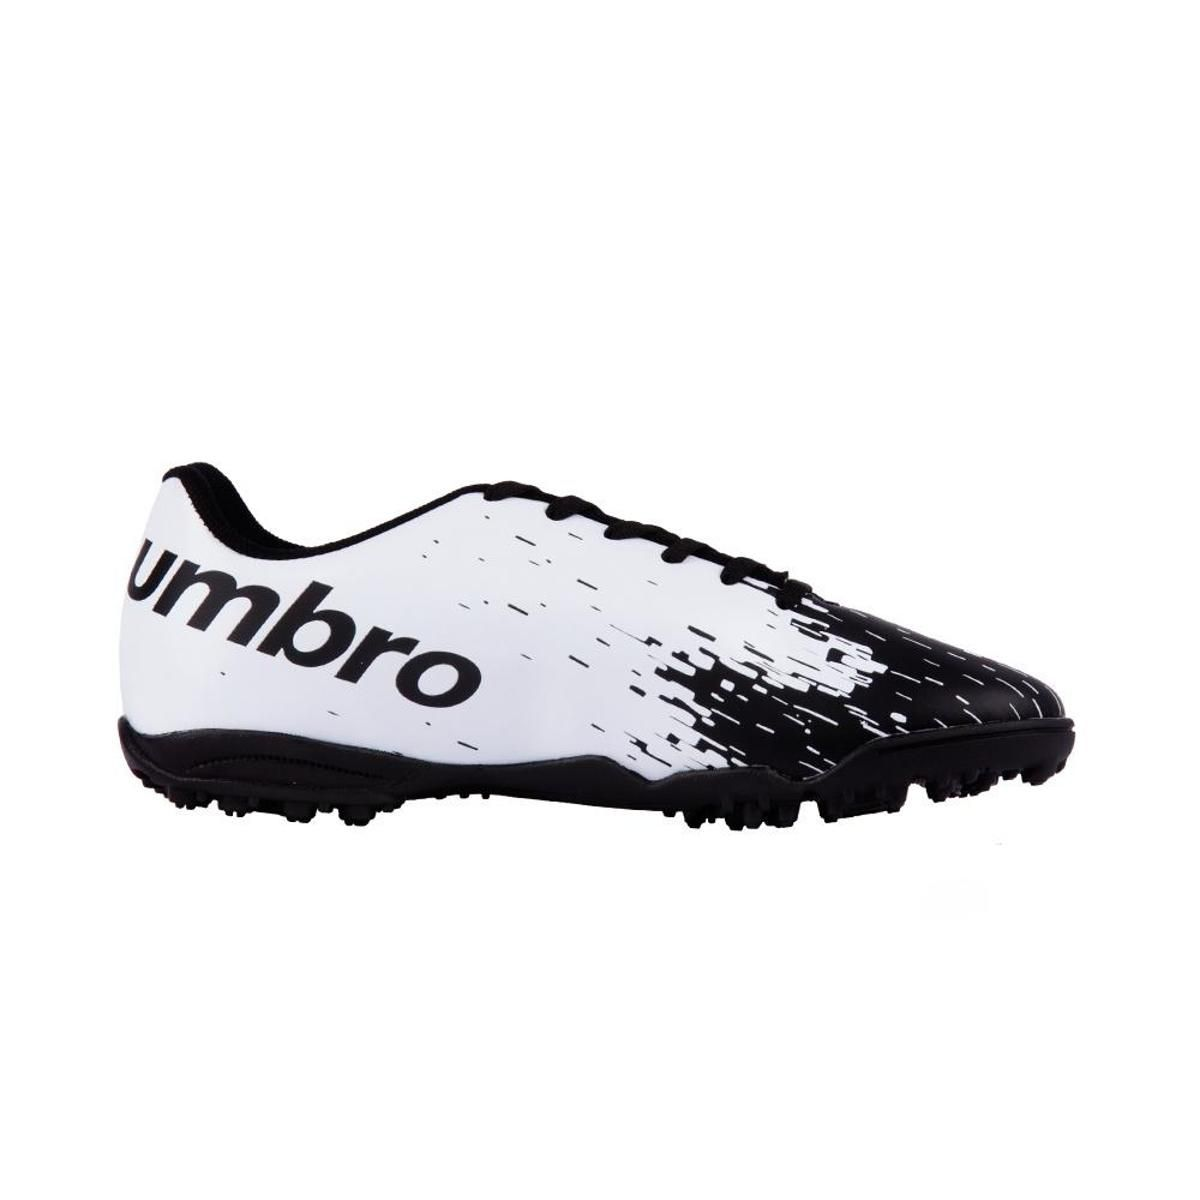 Chuteira Society Umbro Acid Adulto - Preto/Branco